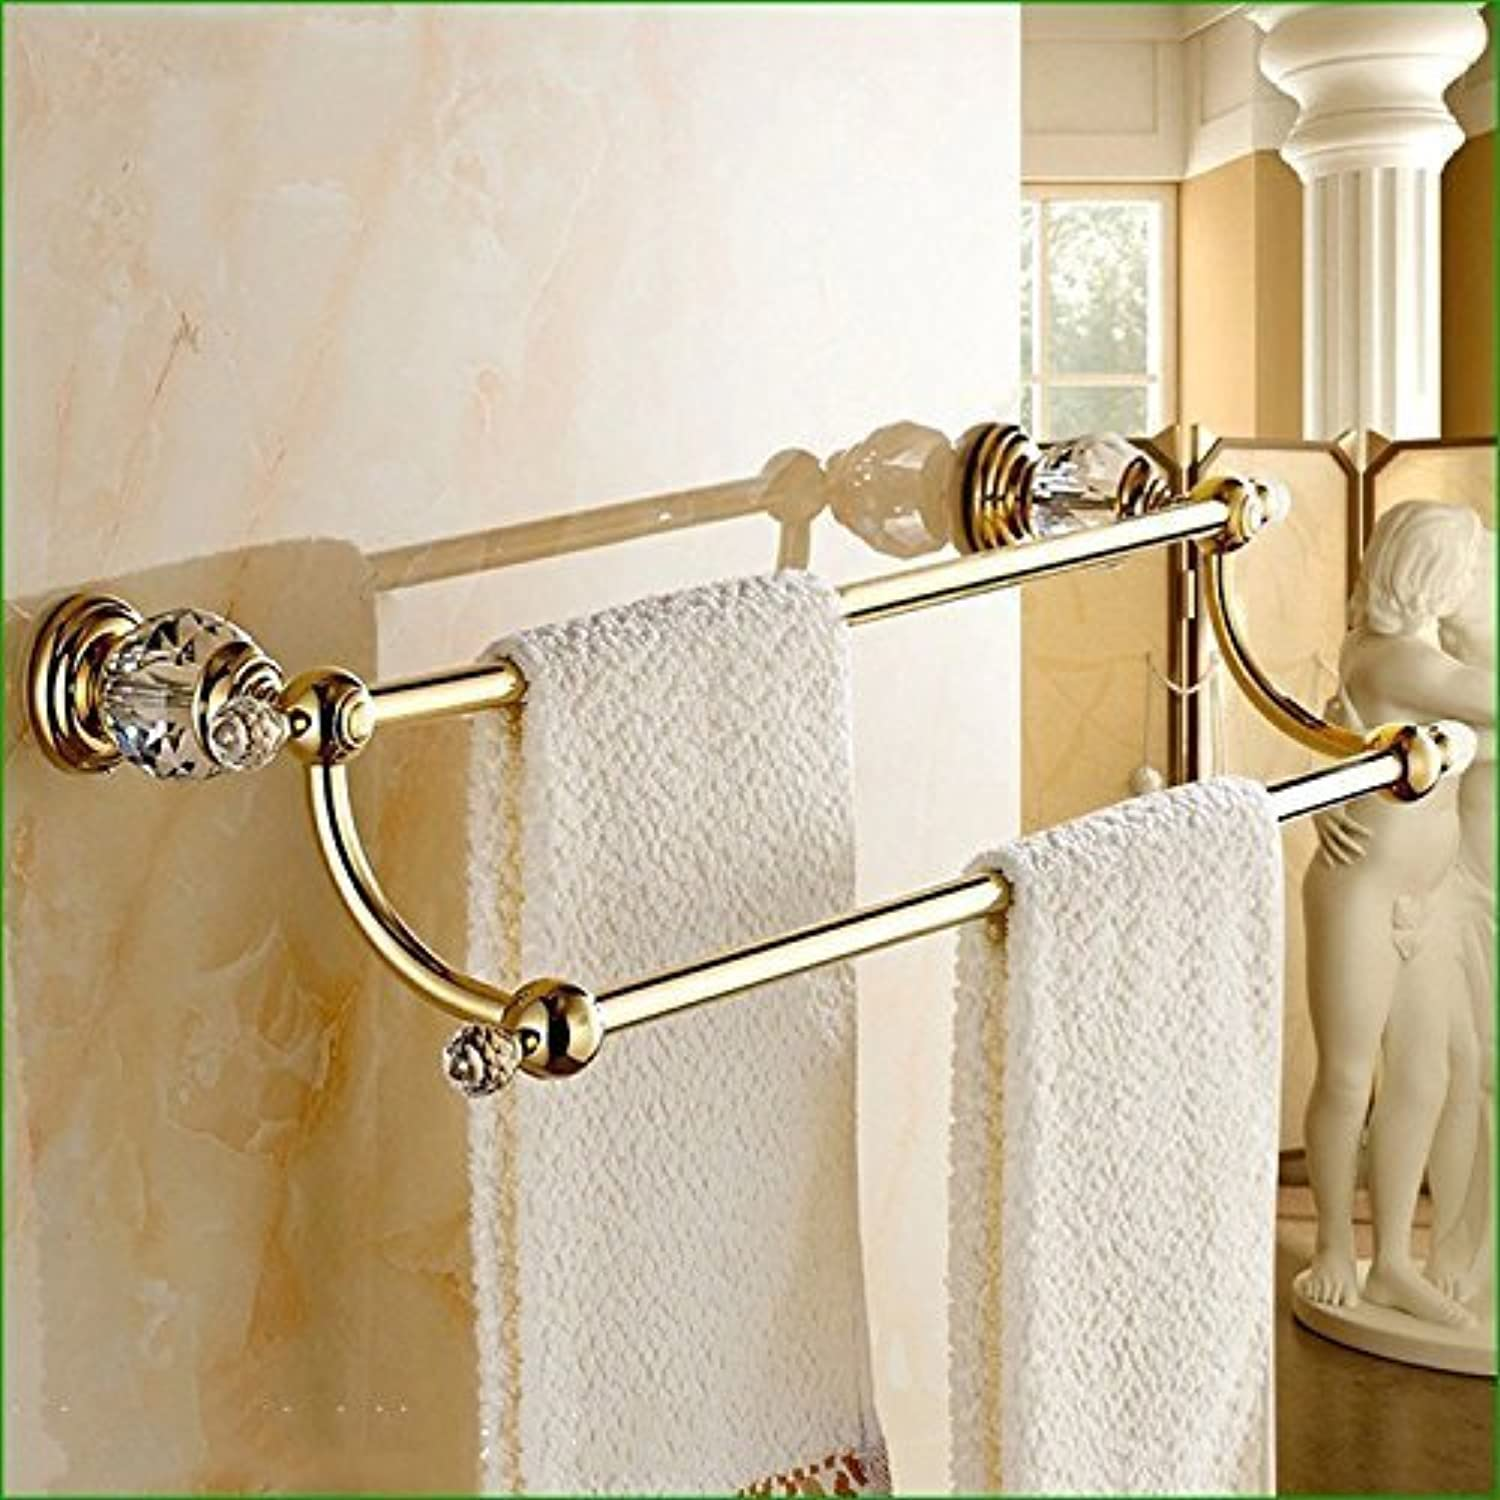 The Dry-Towels Crystal gold Copper Bathroom Accessories Double Bar Dry-Towels